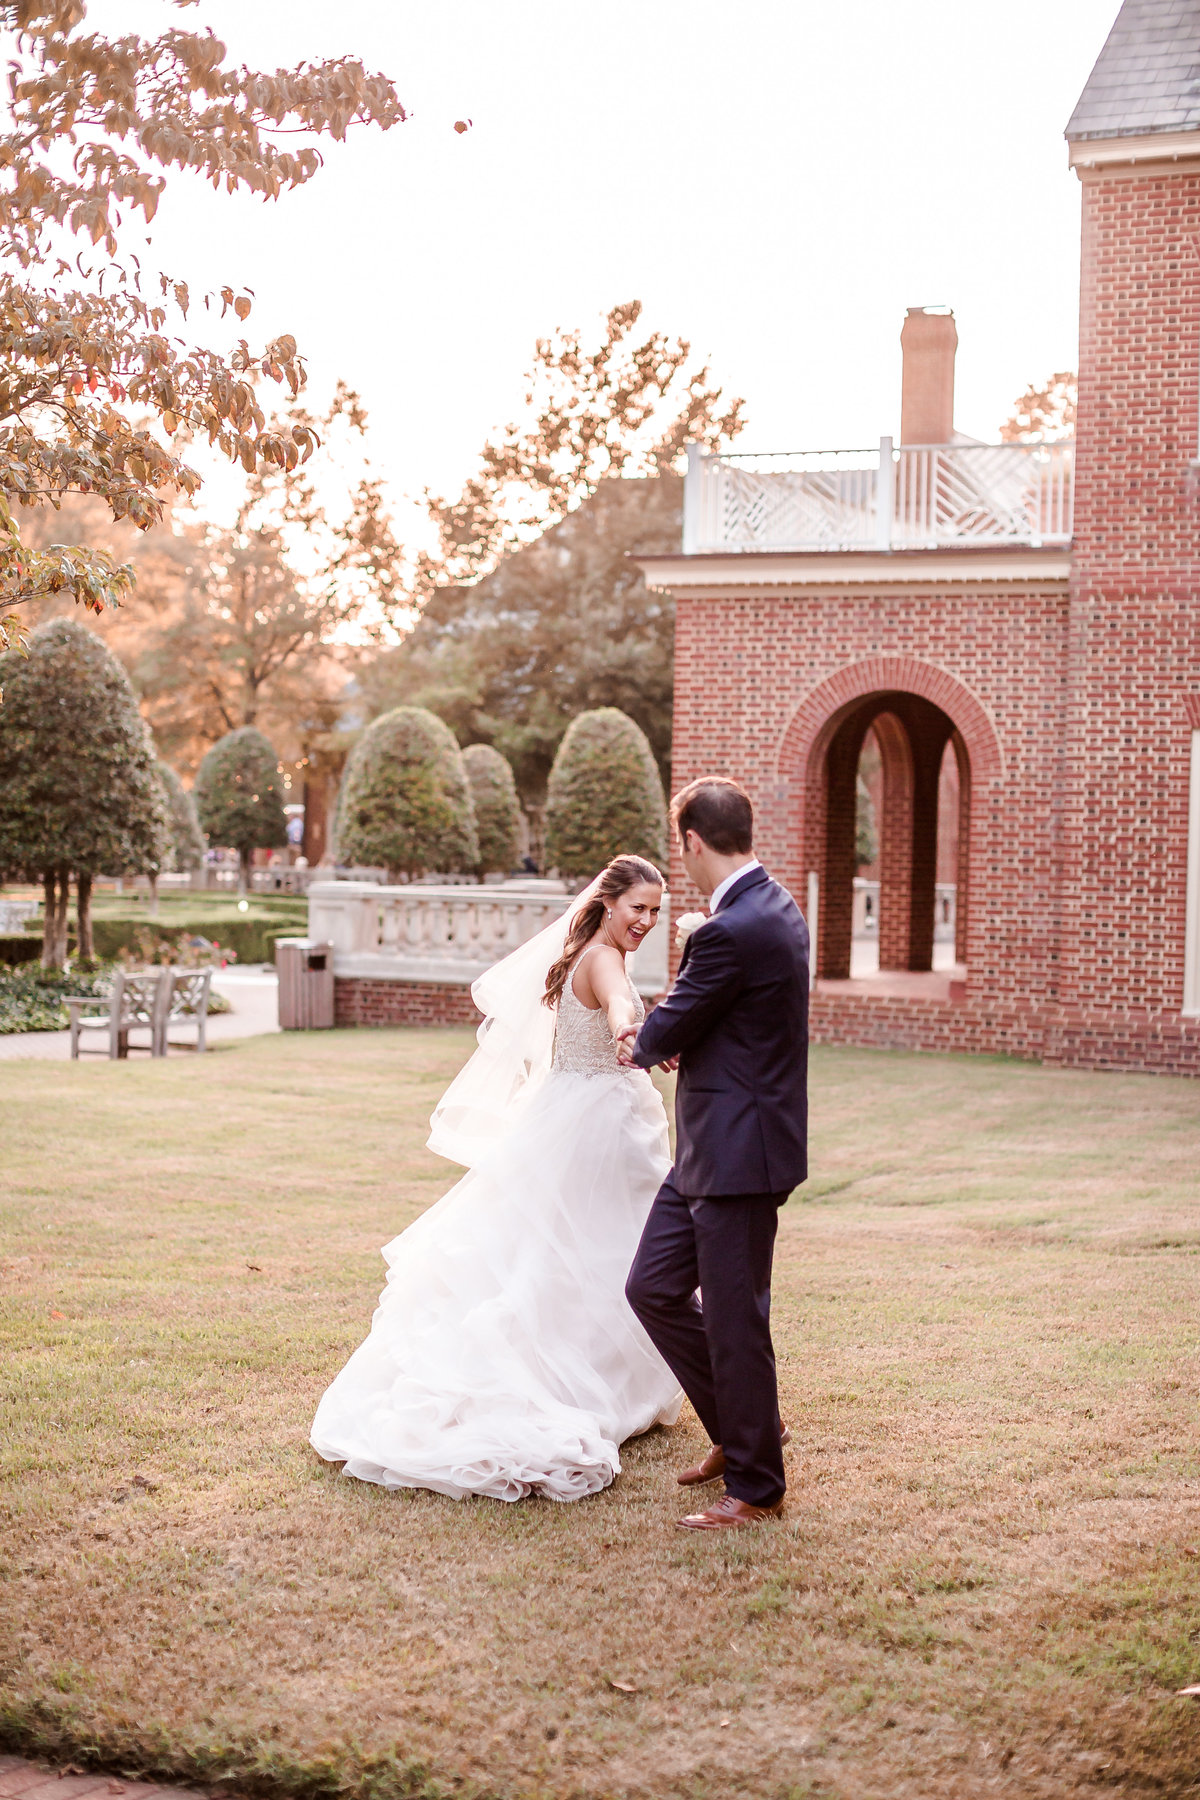 meghan lupyan hampton roads wedding photographer158